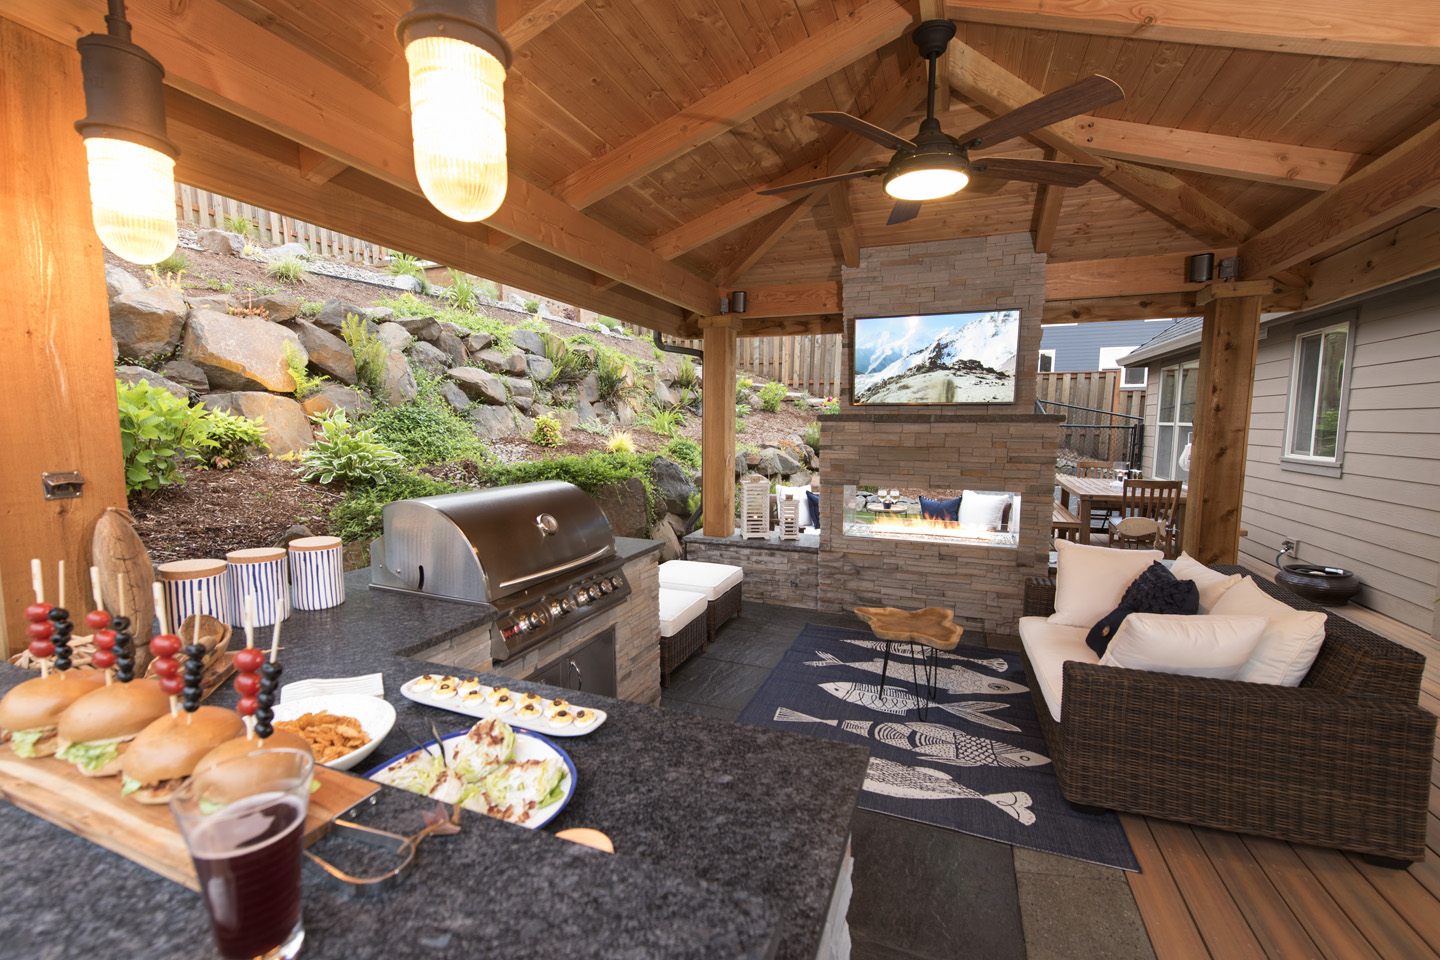 Outdoor Living Spaces - Paradise Restored Landscaping on Backyard Outdoor Living Spaces id=77491